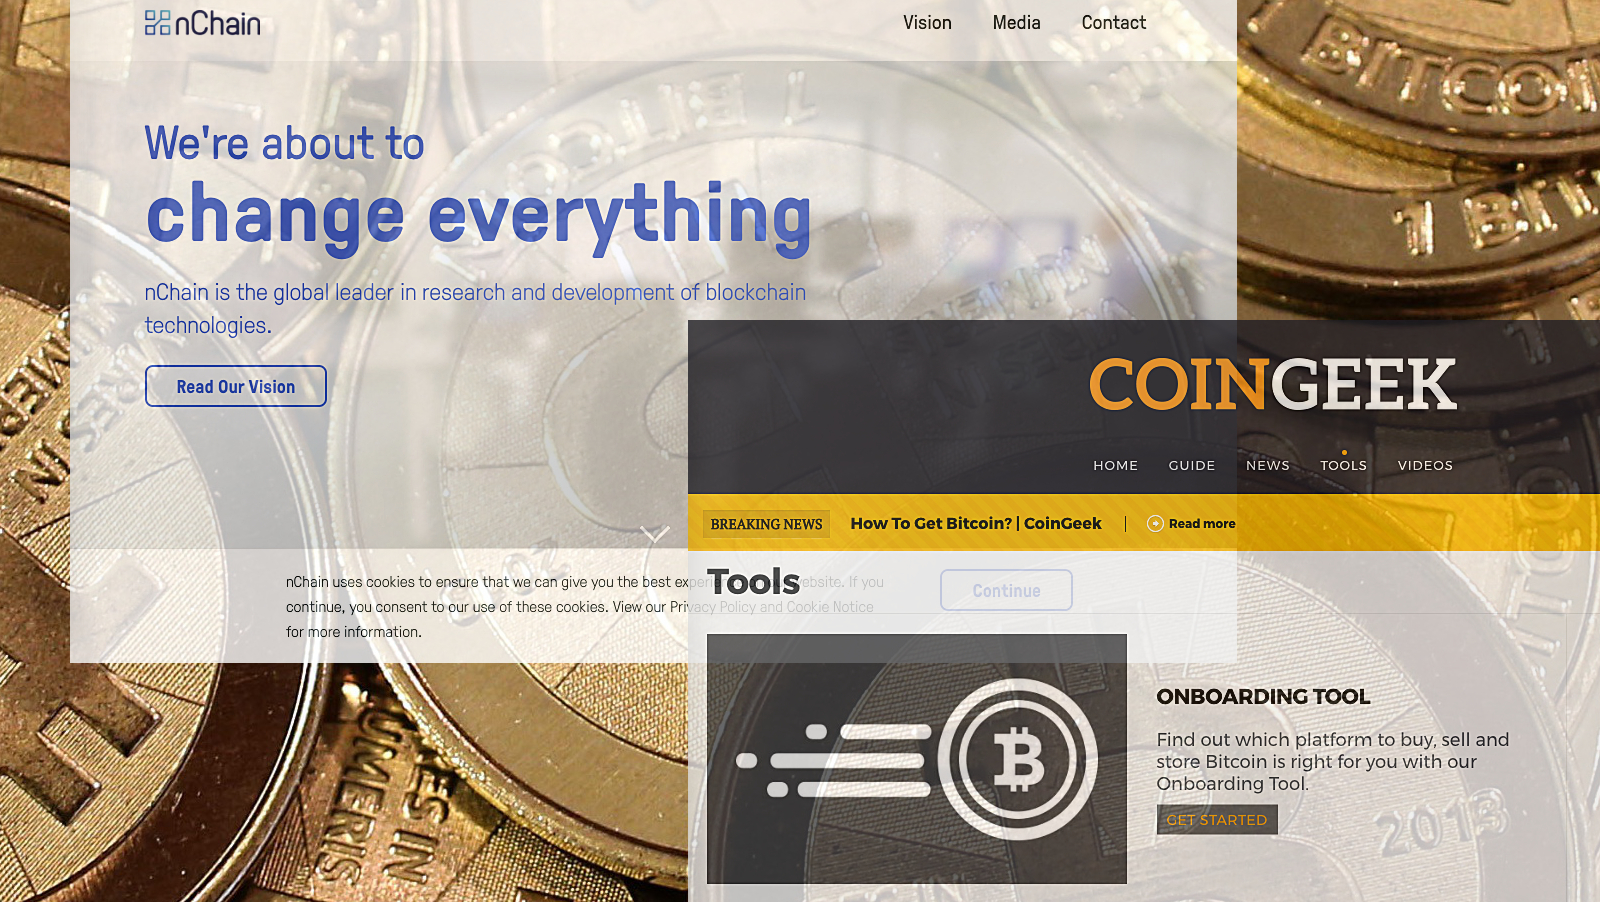 Online gambling should adopt Bitcoin 'onboarding tool'